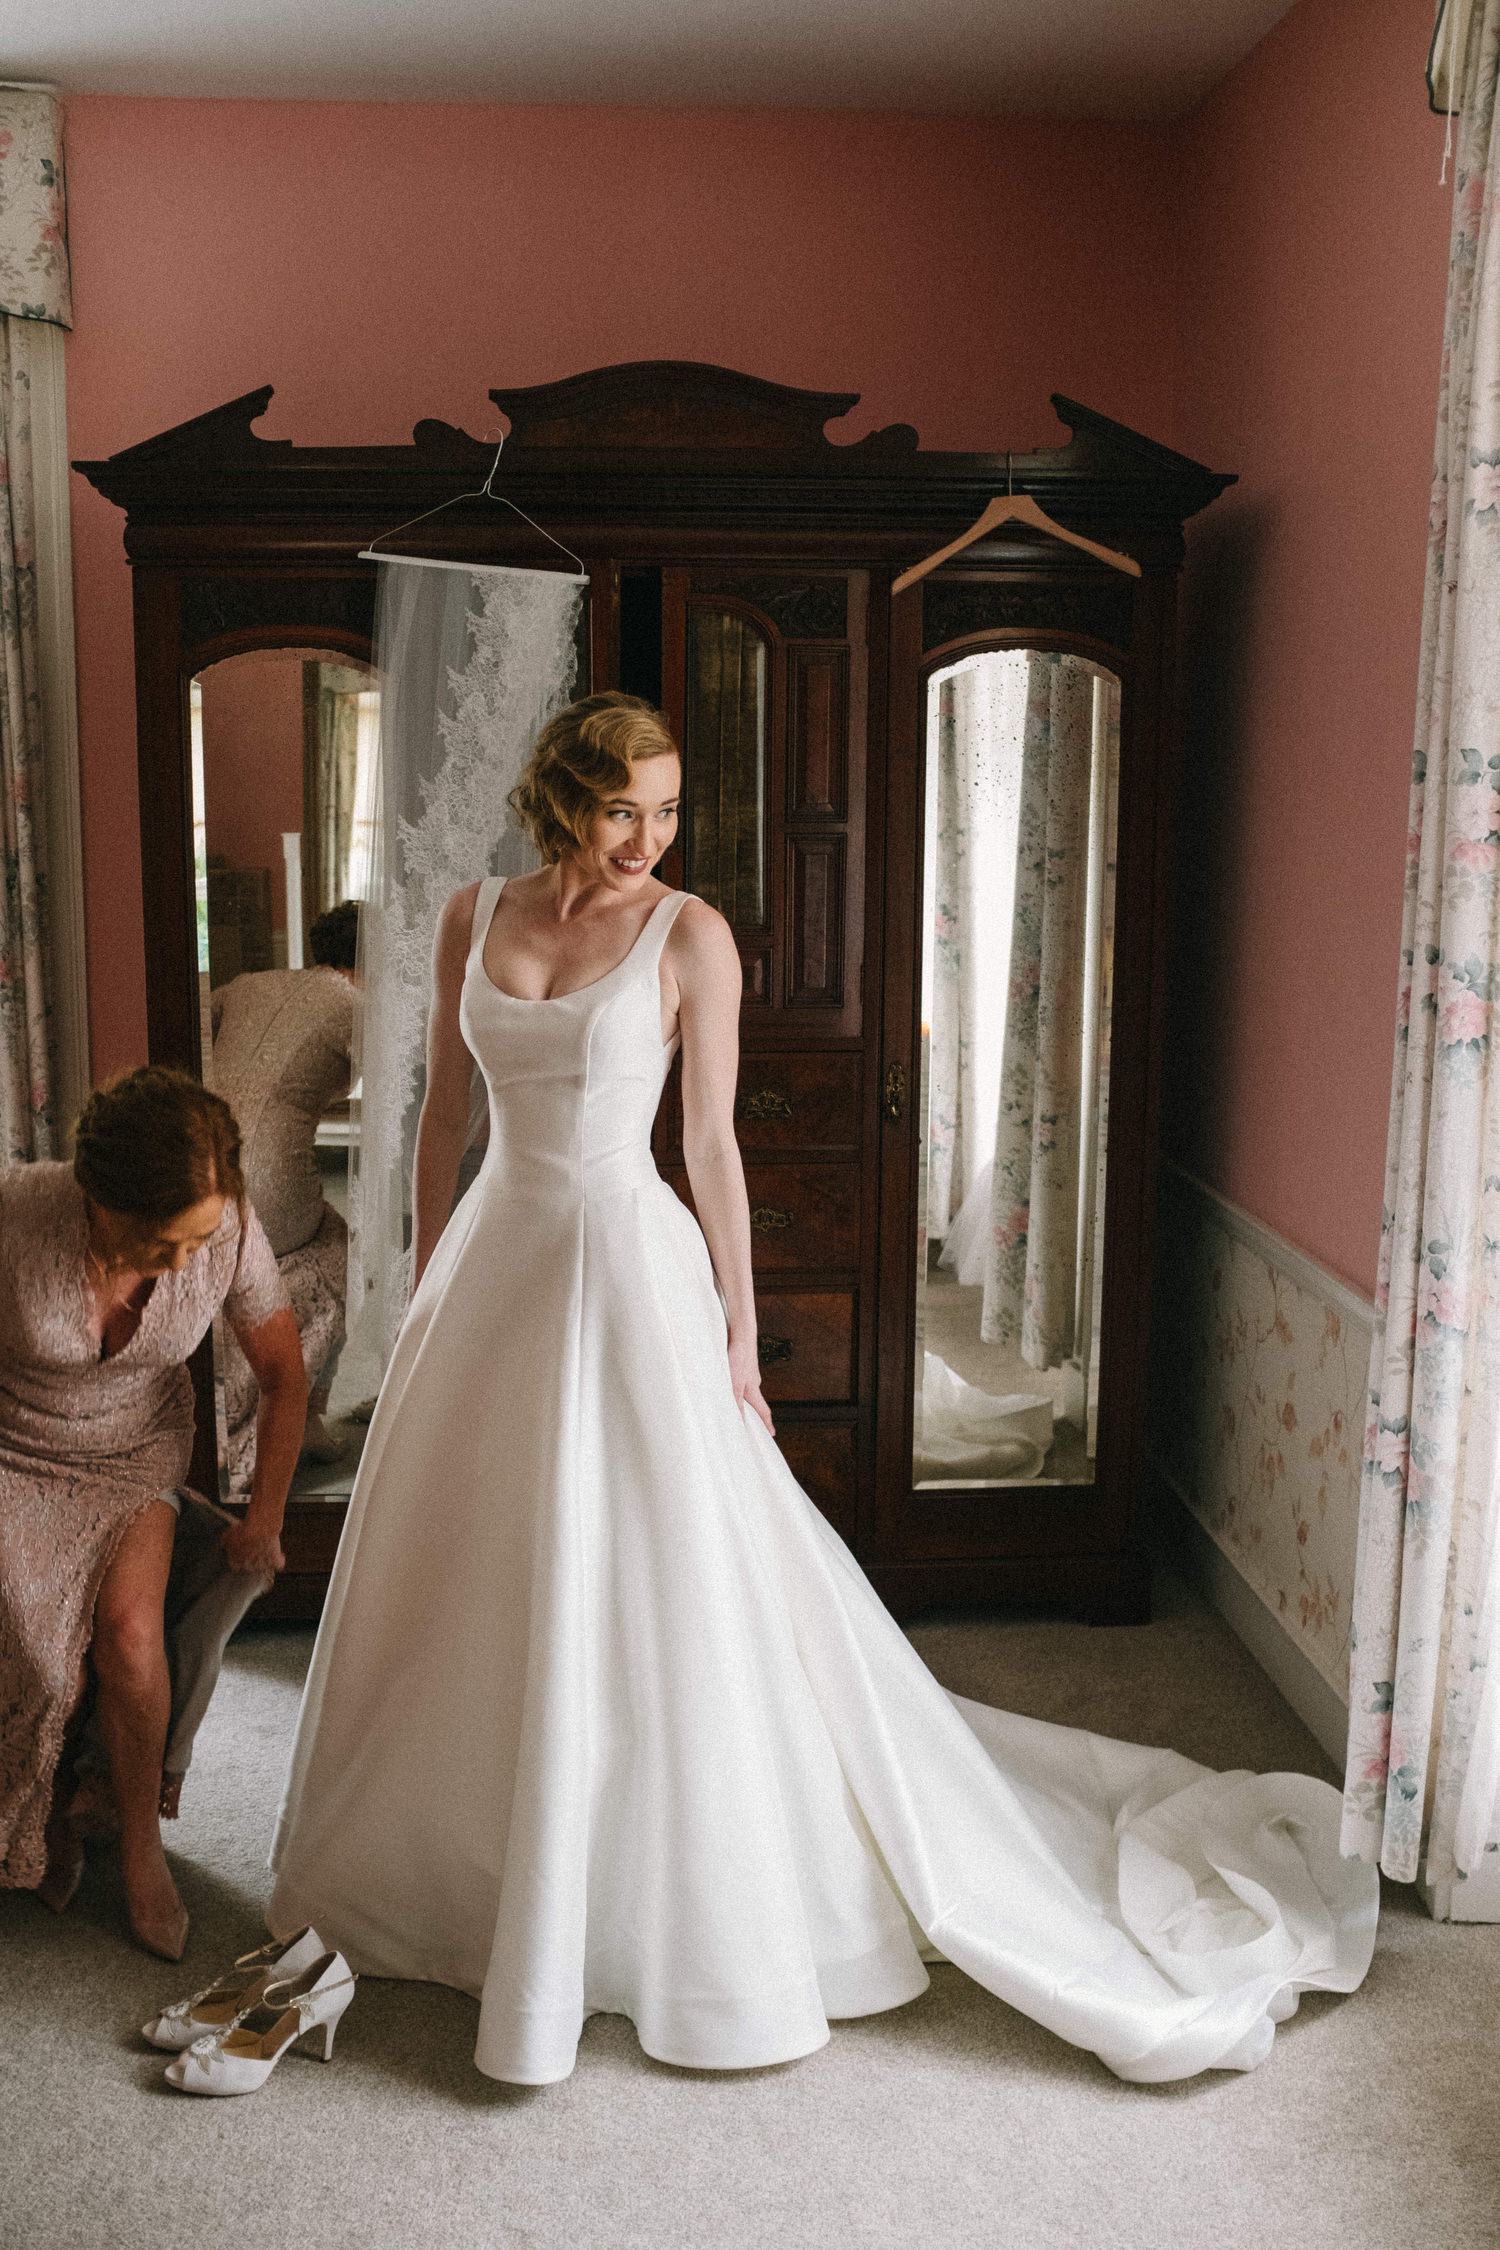 000000000000000000000075_bride_style_preparation_vintage_Hair_dress_photography_david_mcclelland_ireland_makeup_castle_hollywood_kinnity_wedding_photographer_fujifilm